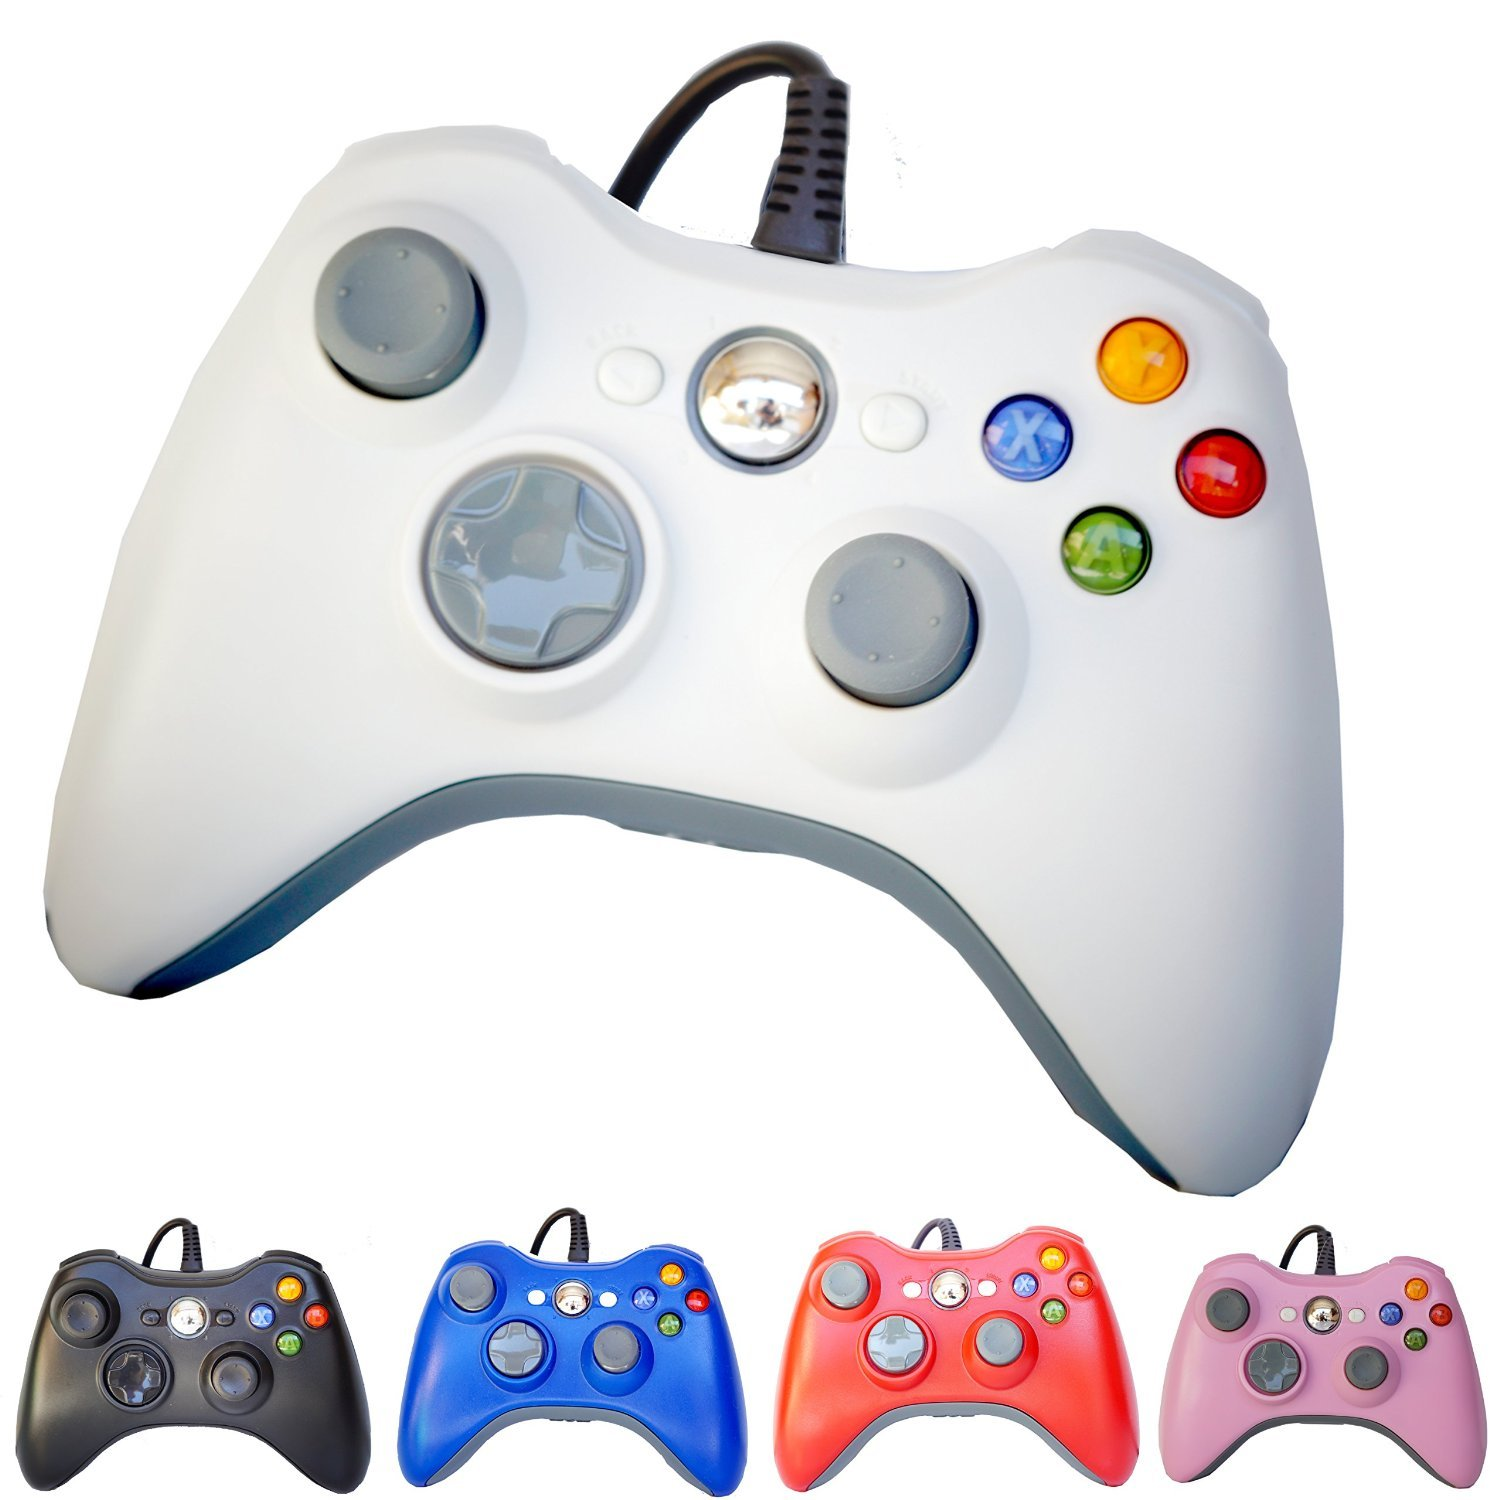 PomeMall USB Wired Game Pad Controller for Xbox 360, Windows 7 (X86 ...